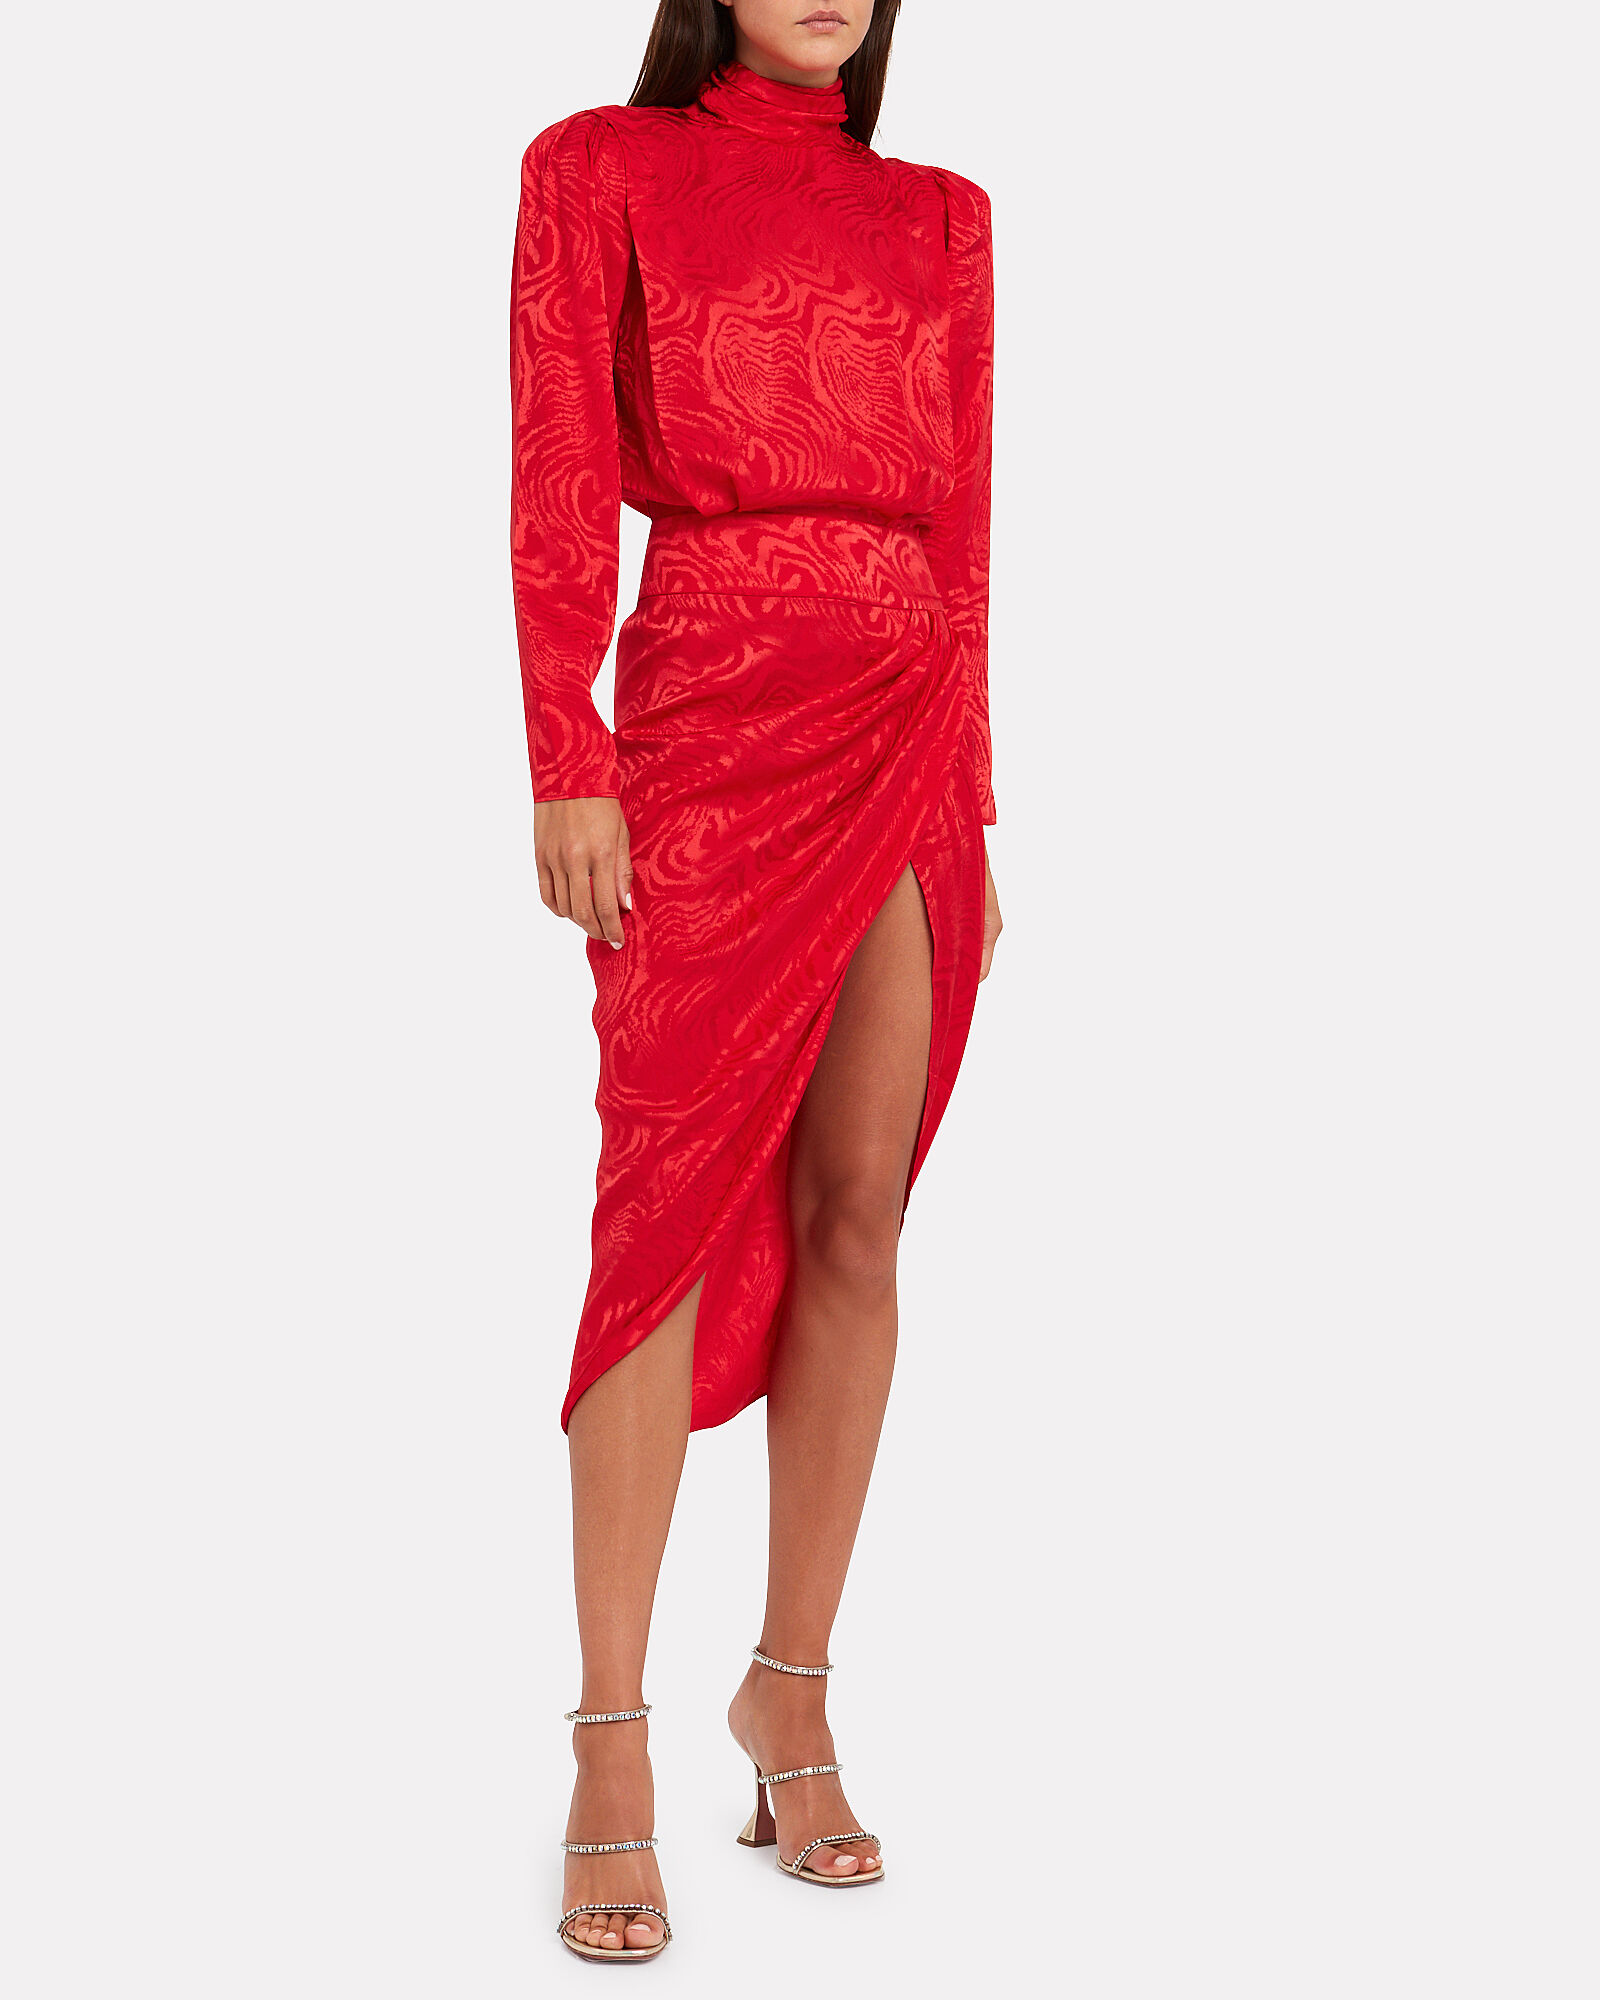 Kaira Moiré High Neck Dress, RED, hi-res